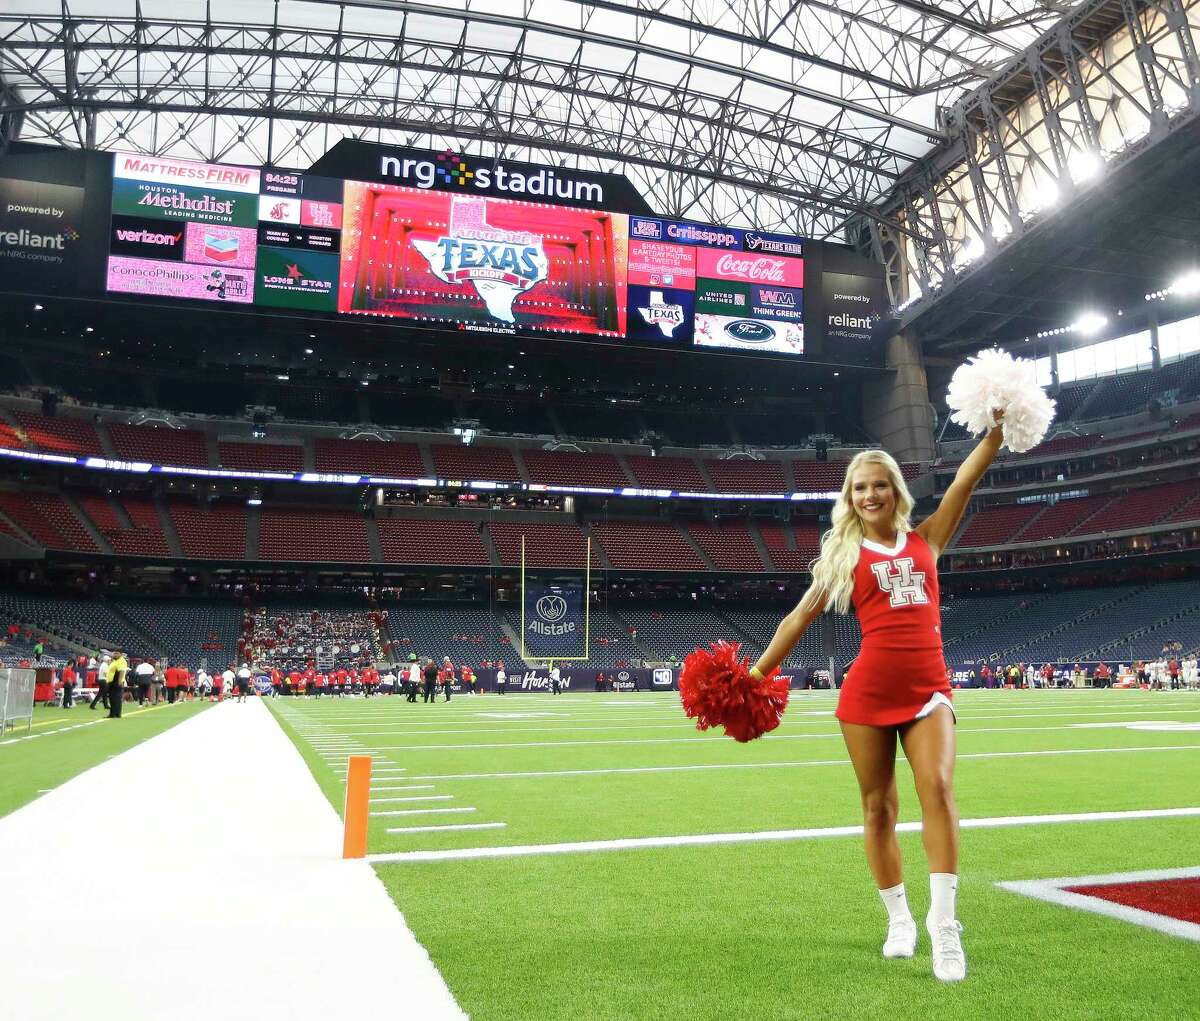 Houston Cougars cheerleaders pose for photos on the field before the start of the AdvoCare Texas Kickoff game at NRG Stadium, Friday, Sept. 13, 2019, in Houston.